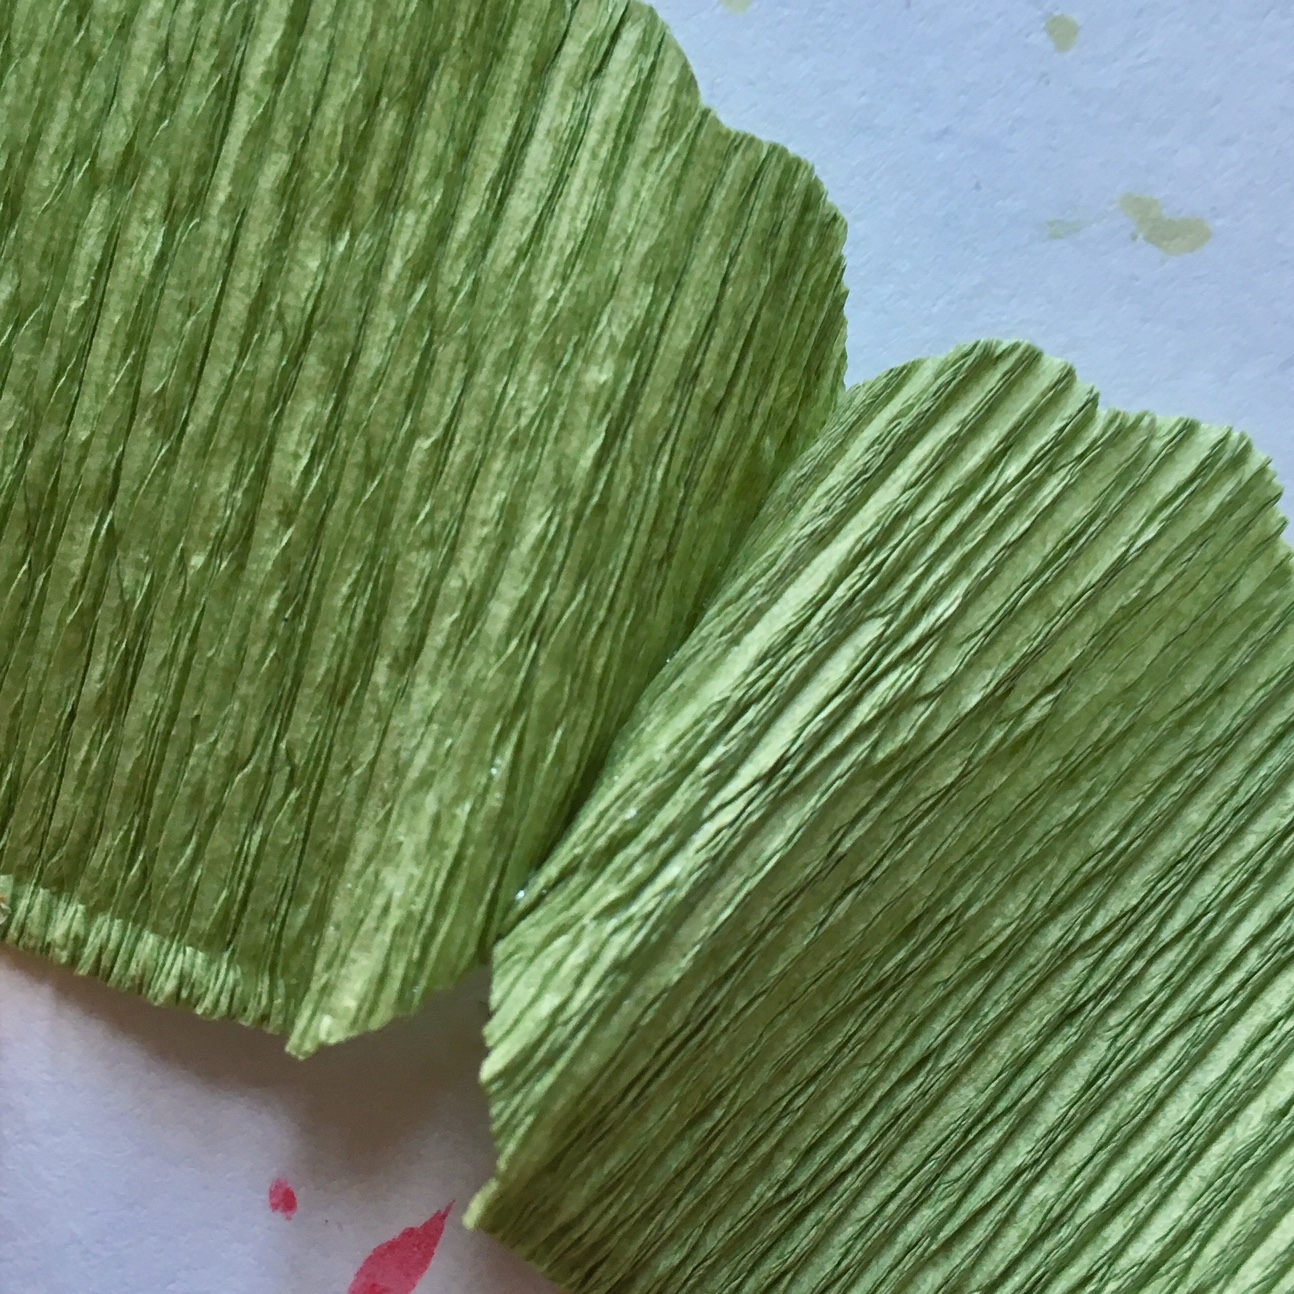 how to glue together the leaf parts